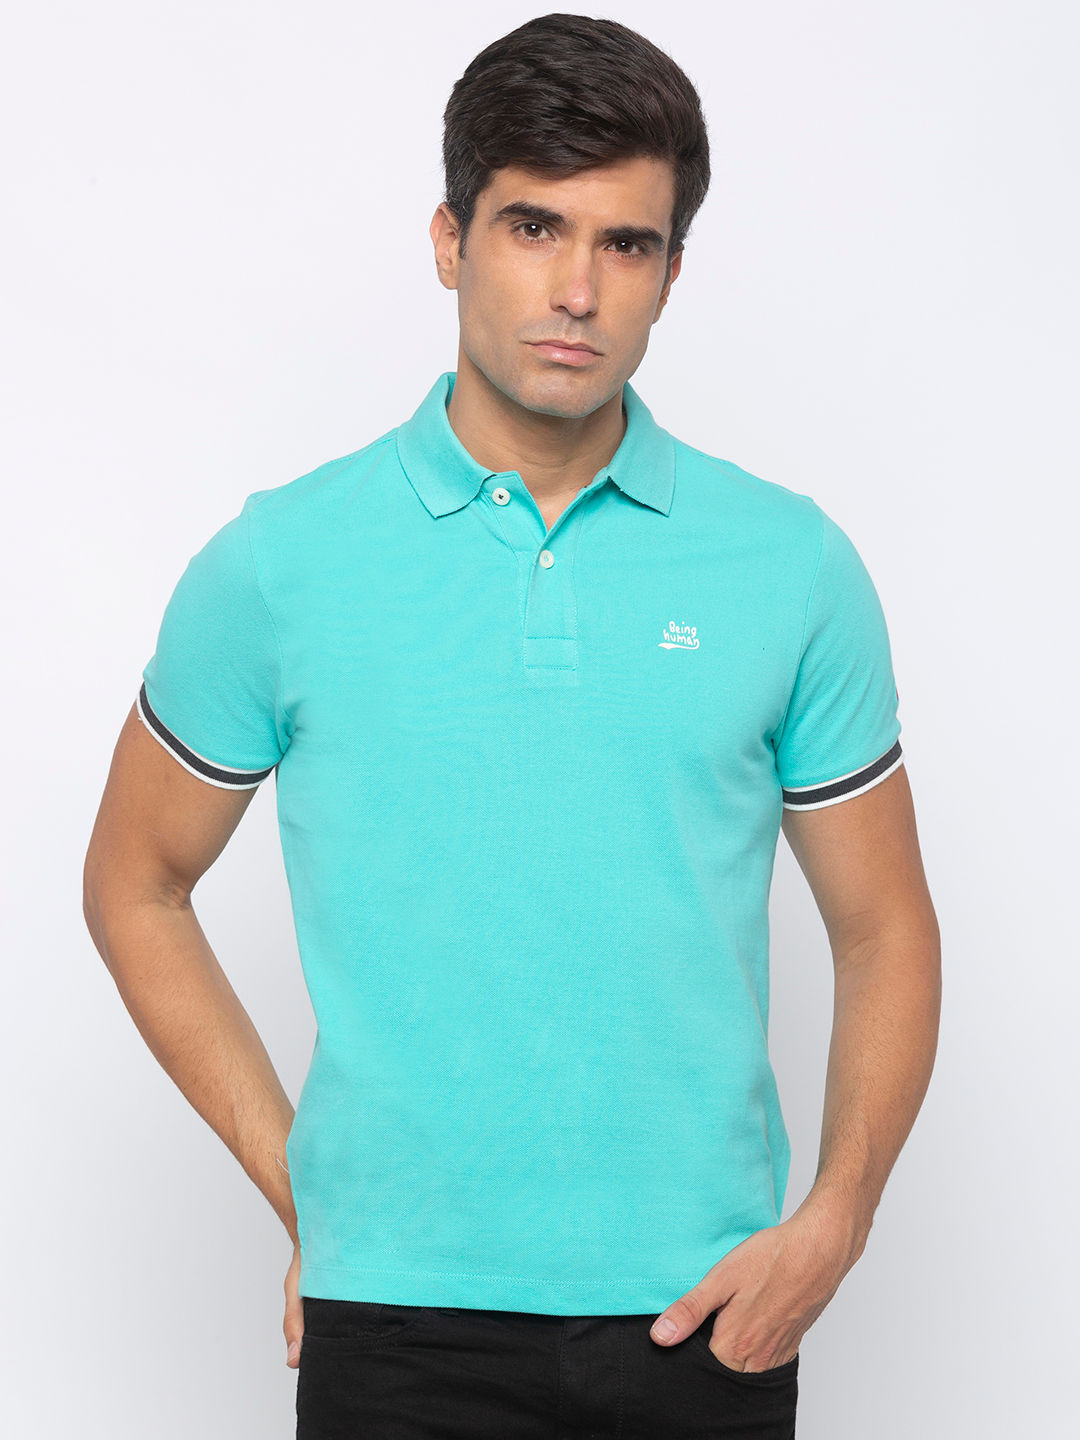 Mens Short Sleeve Polo Neck with Emb